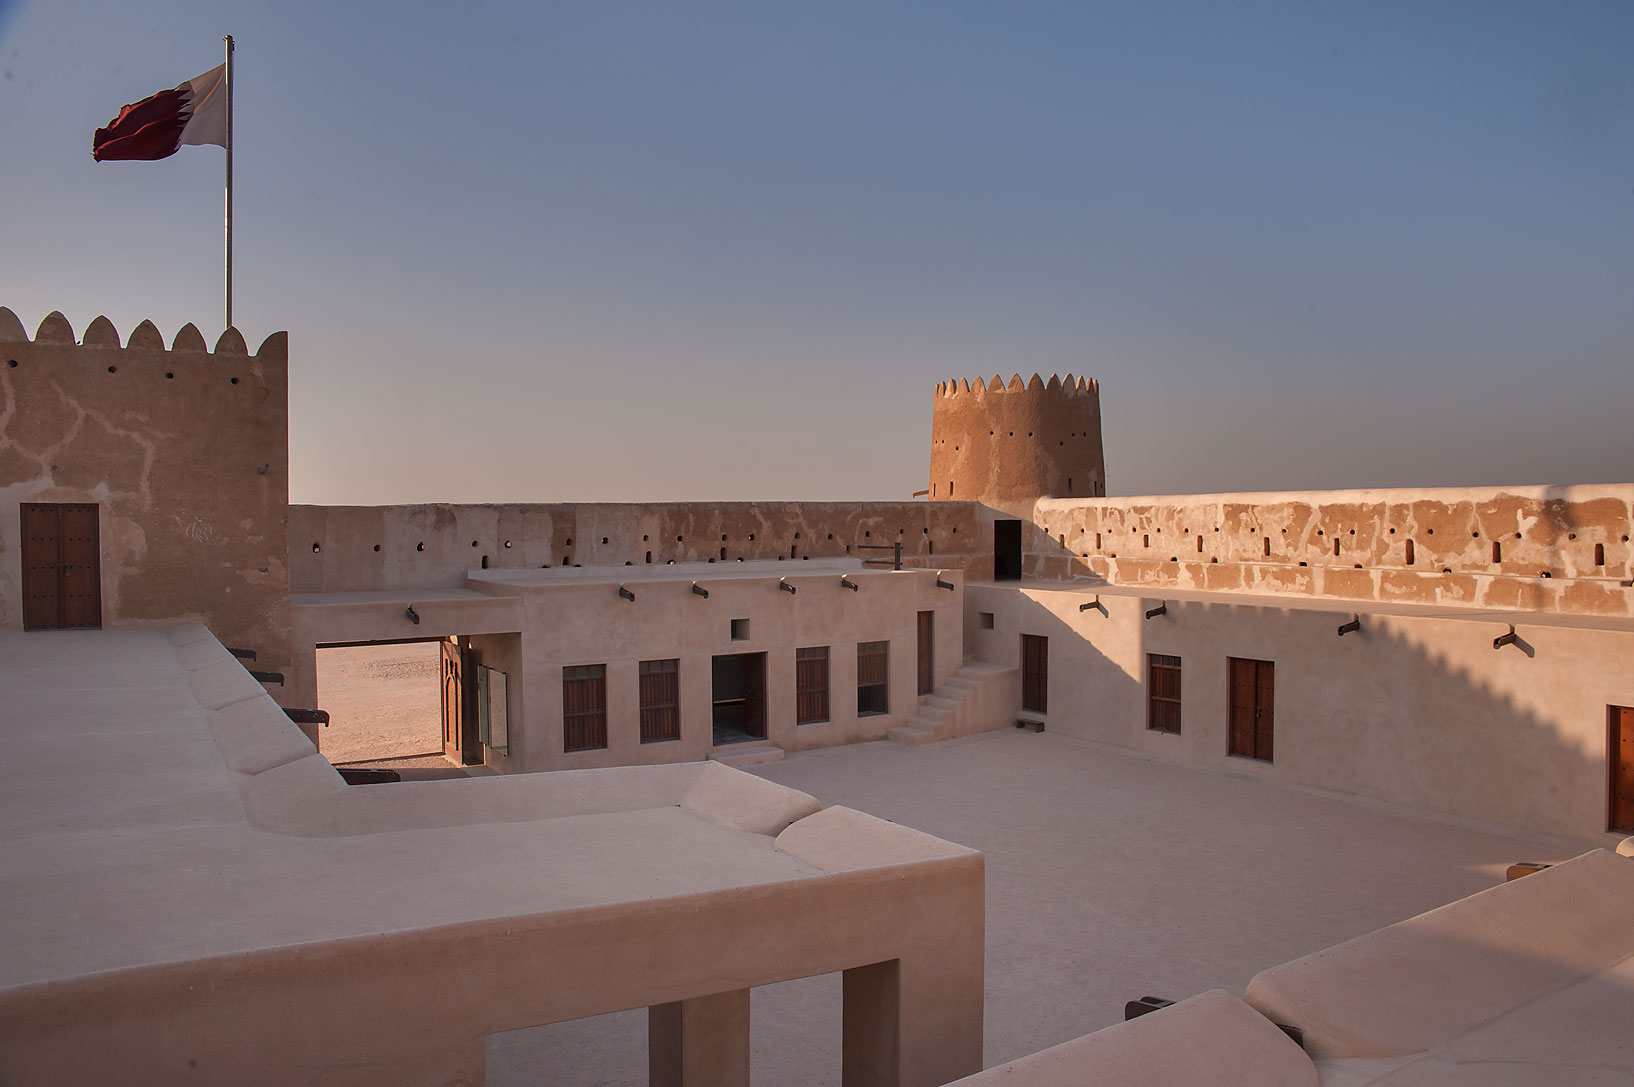 Yard inside Zubara Fort. Northern Qatar